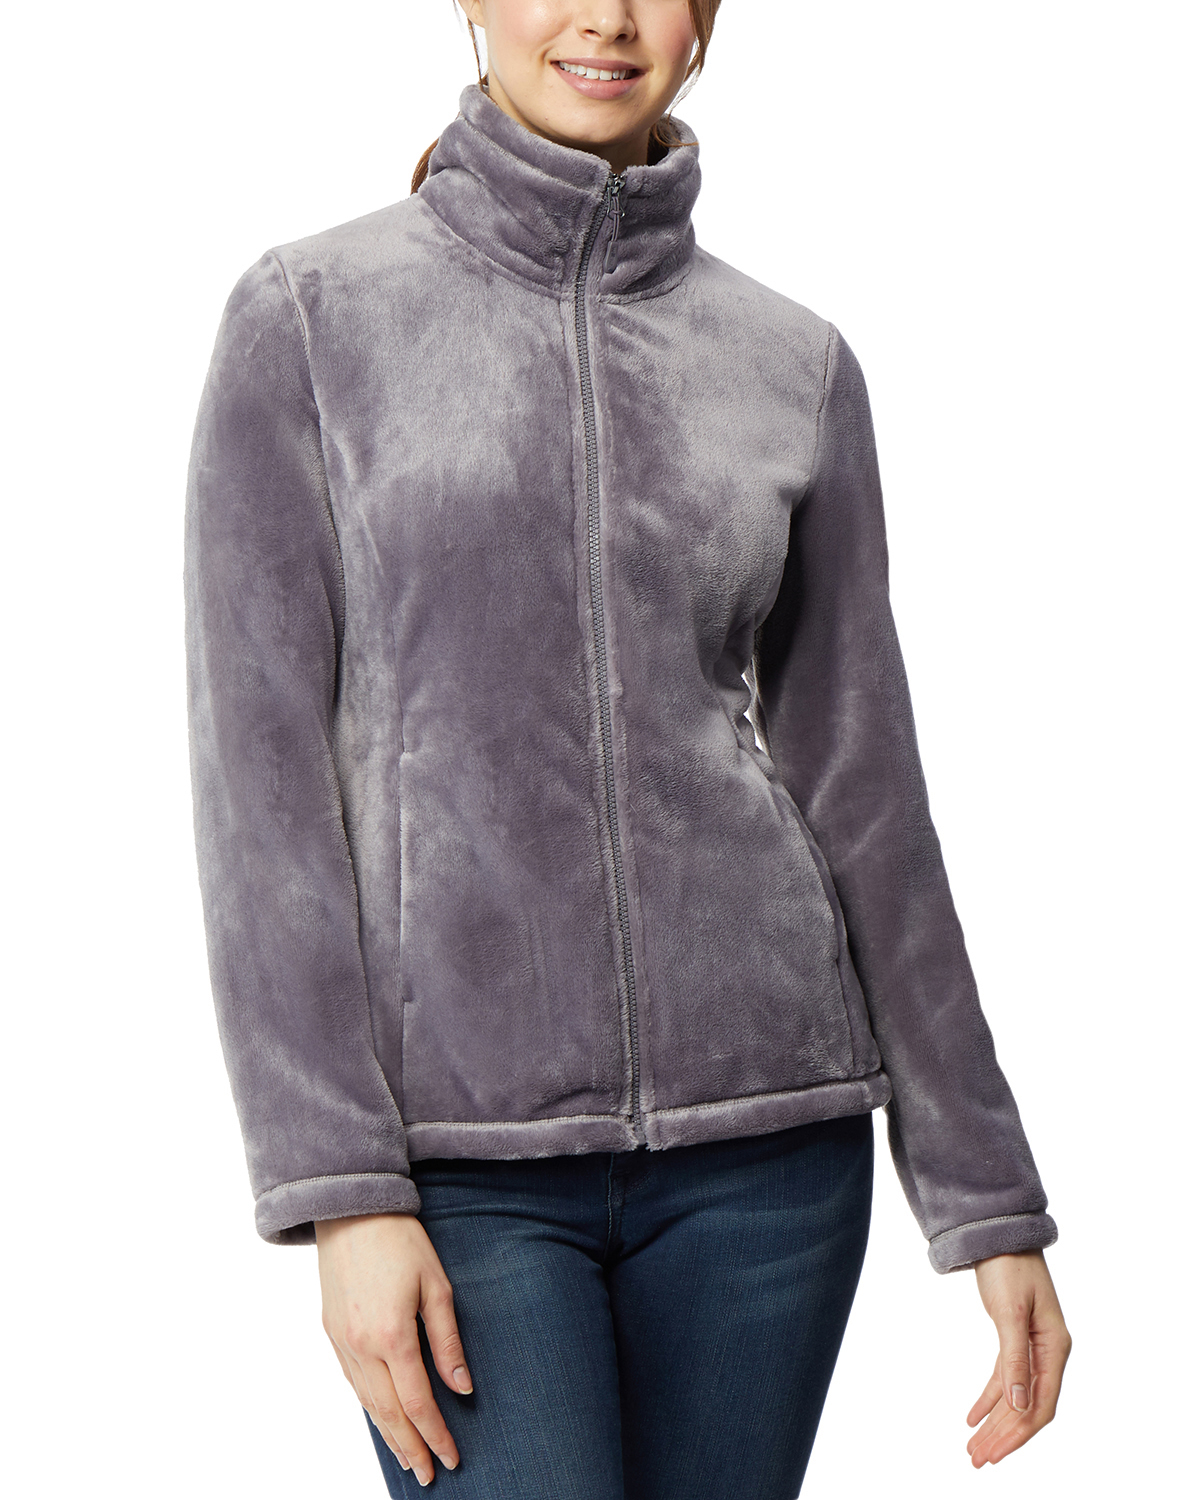 Deals on 360Air Womens Athleisure Luxe Plush Jacket